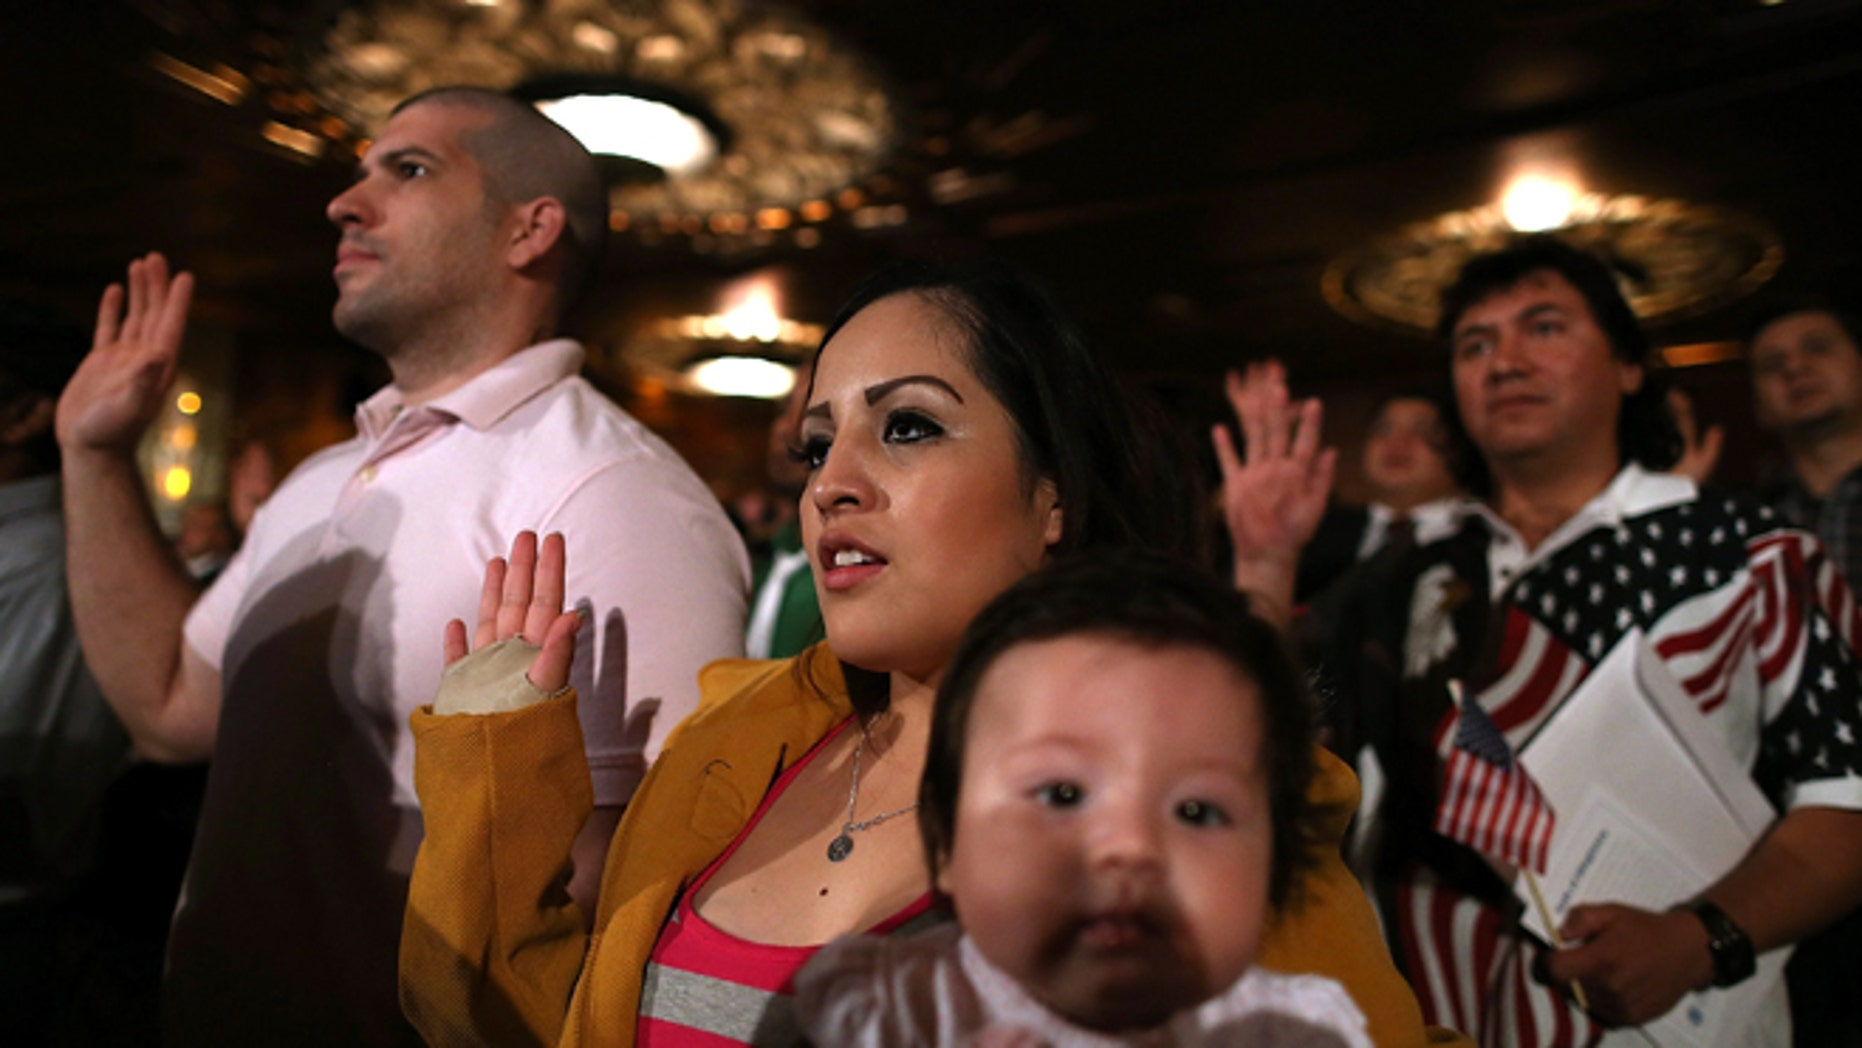 OAKLAND, CA - JULY 30:  Karen Franco of Peru holds her four-month old daughter Kyara Franco as she is sworn in as a U.S. citizen during a naturalization ceremony at the Paramount Theatre on July 30, 2013 in Oakland, California. Over 1,100 immigrants became U.S. citizens at the naturalization ceremony.  (Photo by Justin Sullivan/Getty Images)